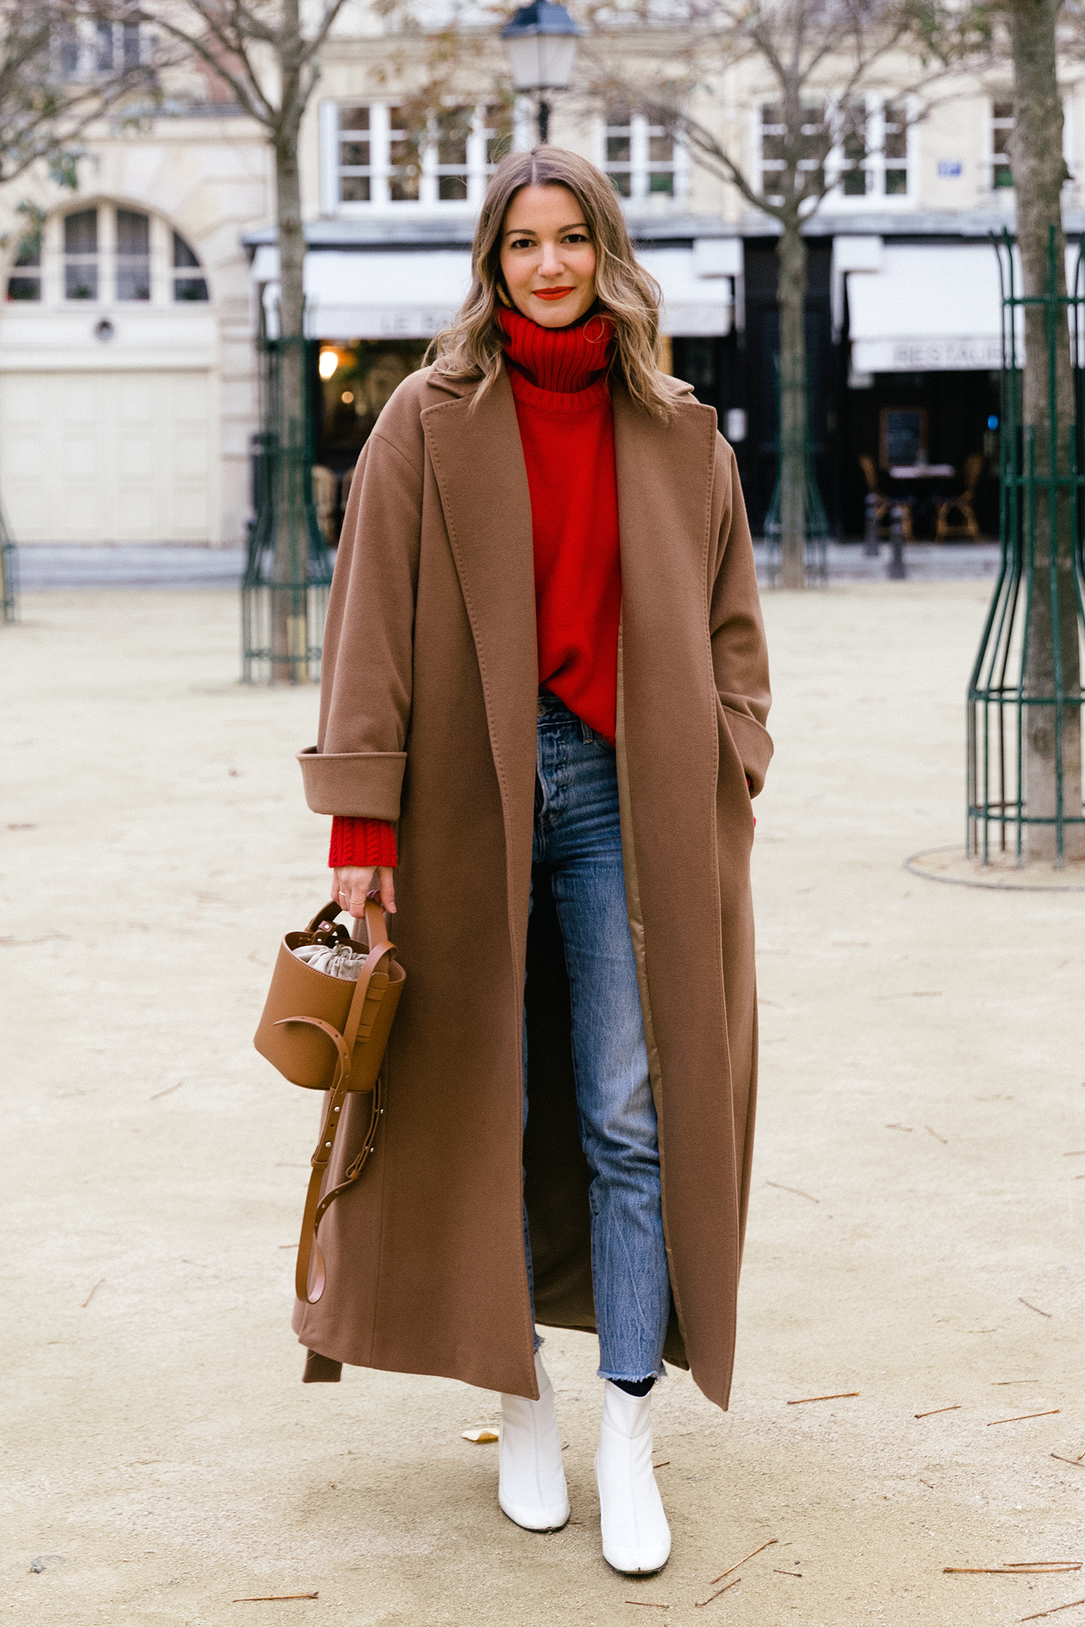 Stylish Holiday Outfit Idea for Christmas and More — Rue Rodier or Marissa Cox in a brown coat, red turtleneck sweater, mini bucket bag, raw-hem jeans, and white boots<